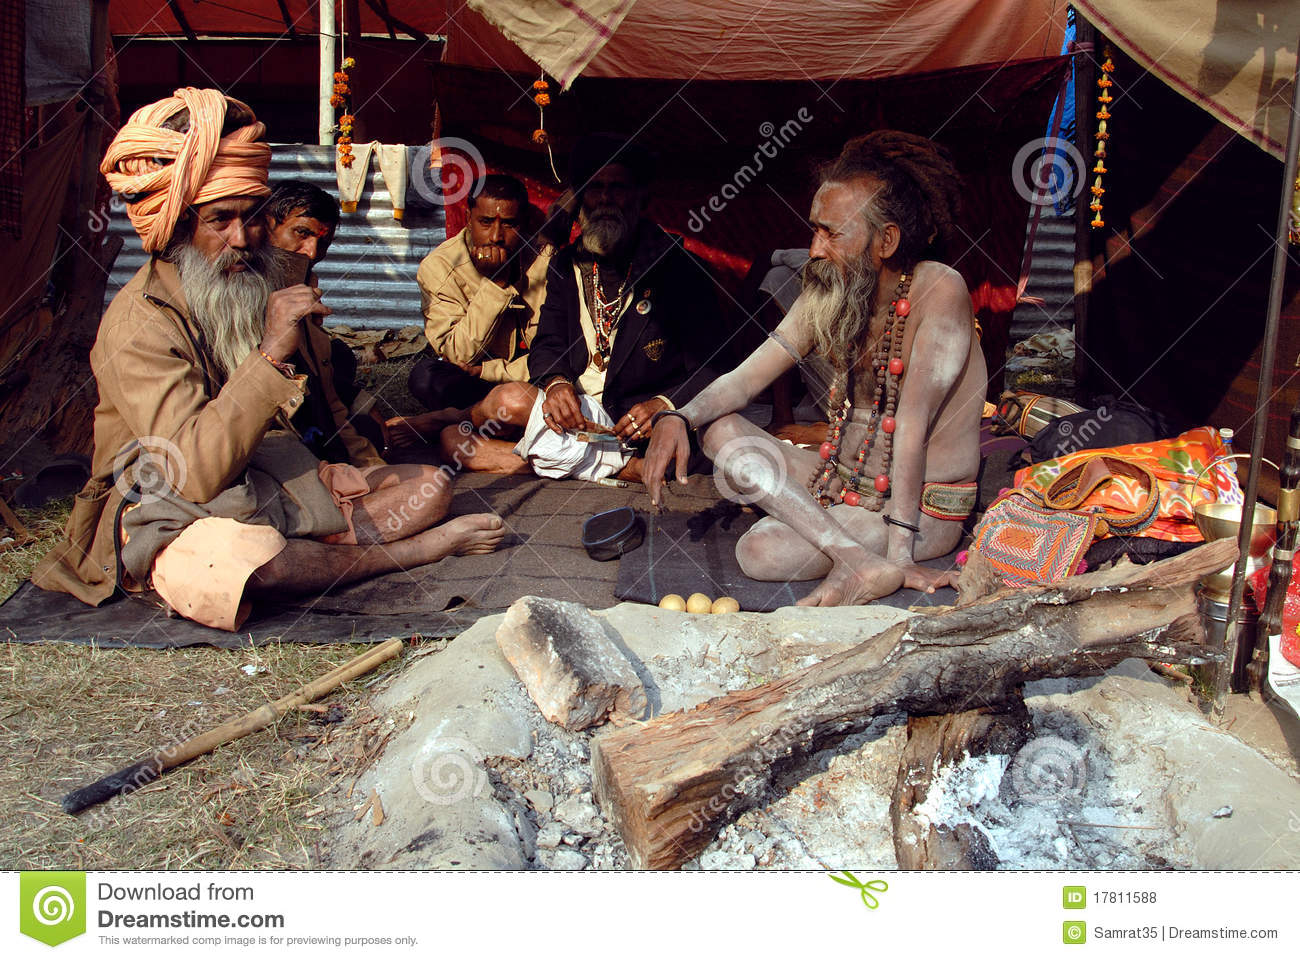 Sadhus Of India http://www.dreamstime.com/royalty-free-stock-photos-sadhus-holy-men-india-image17811588